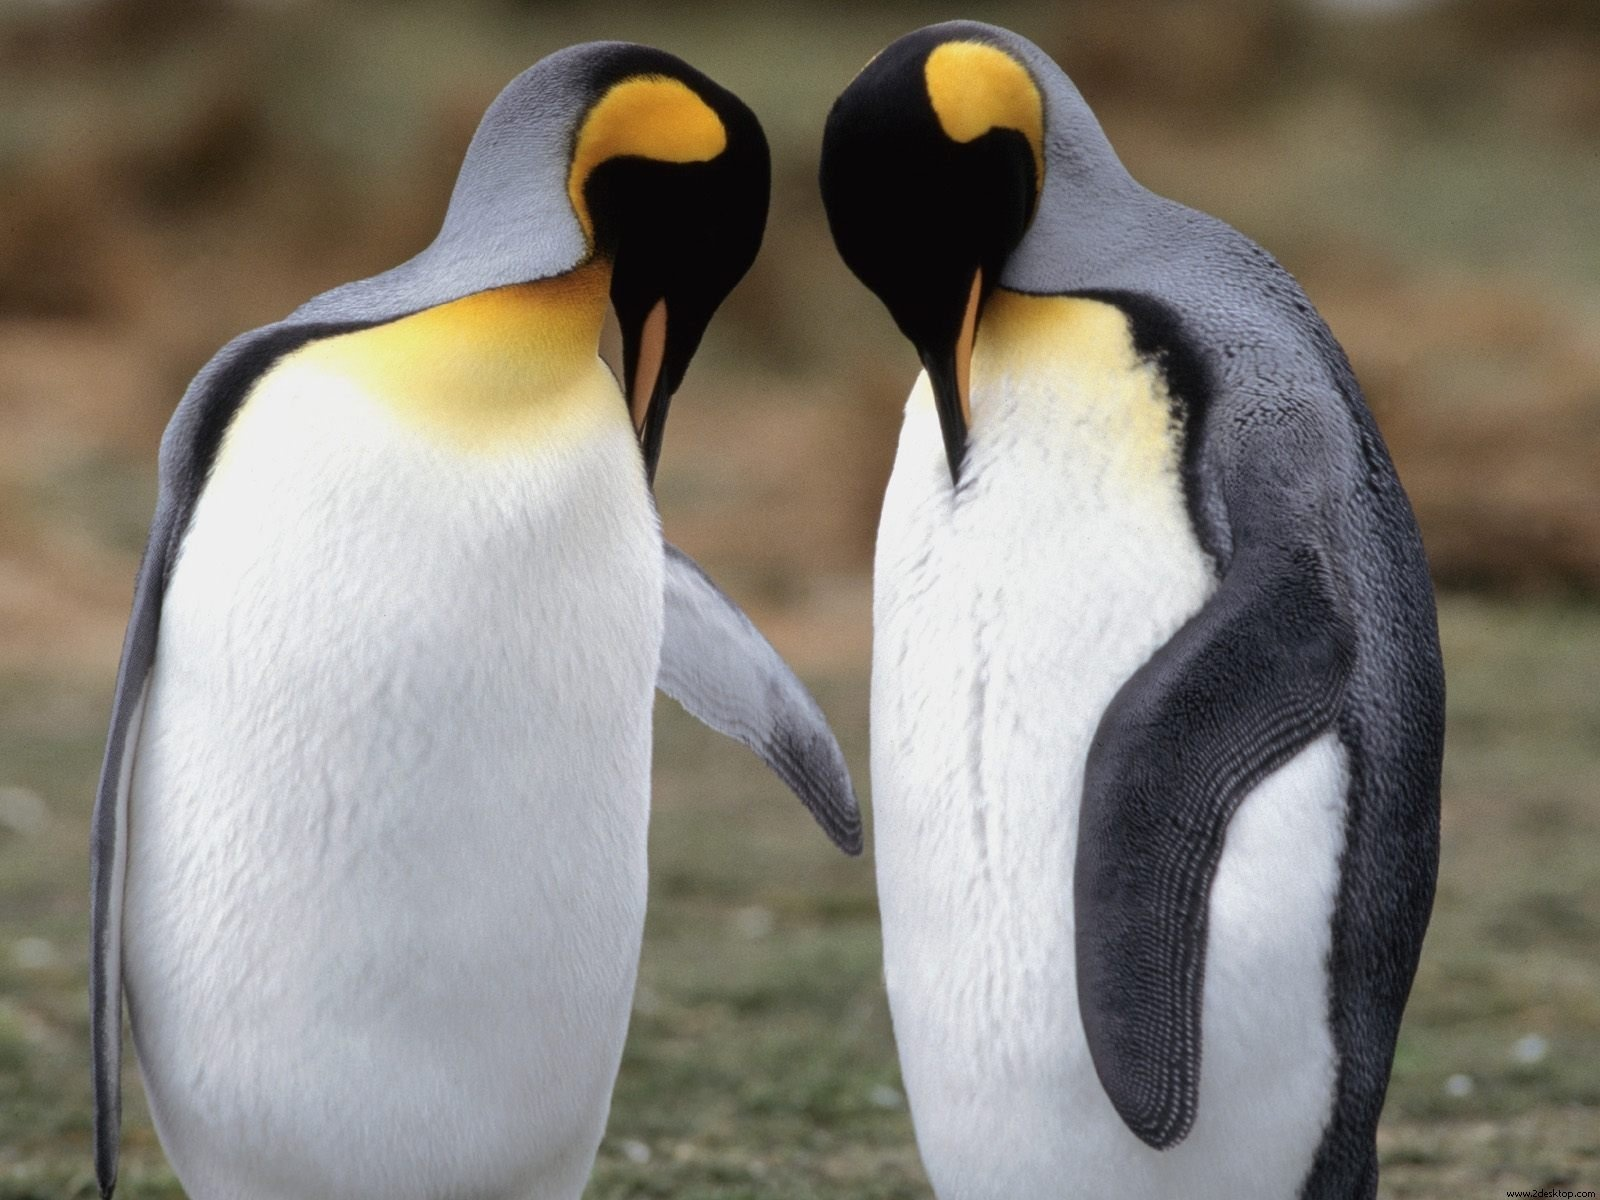 Tuxedo Check King Penguins Wallpapers in jpg format for download 1600x1200